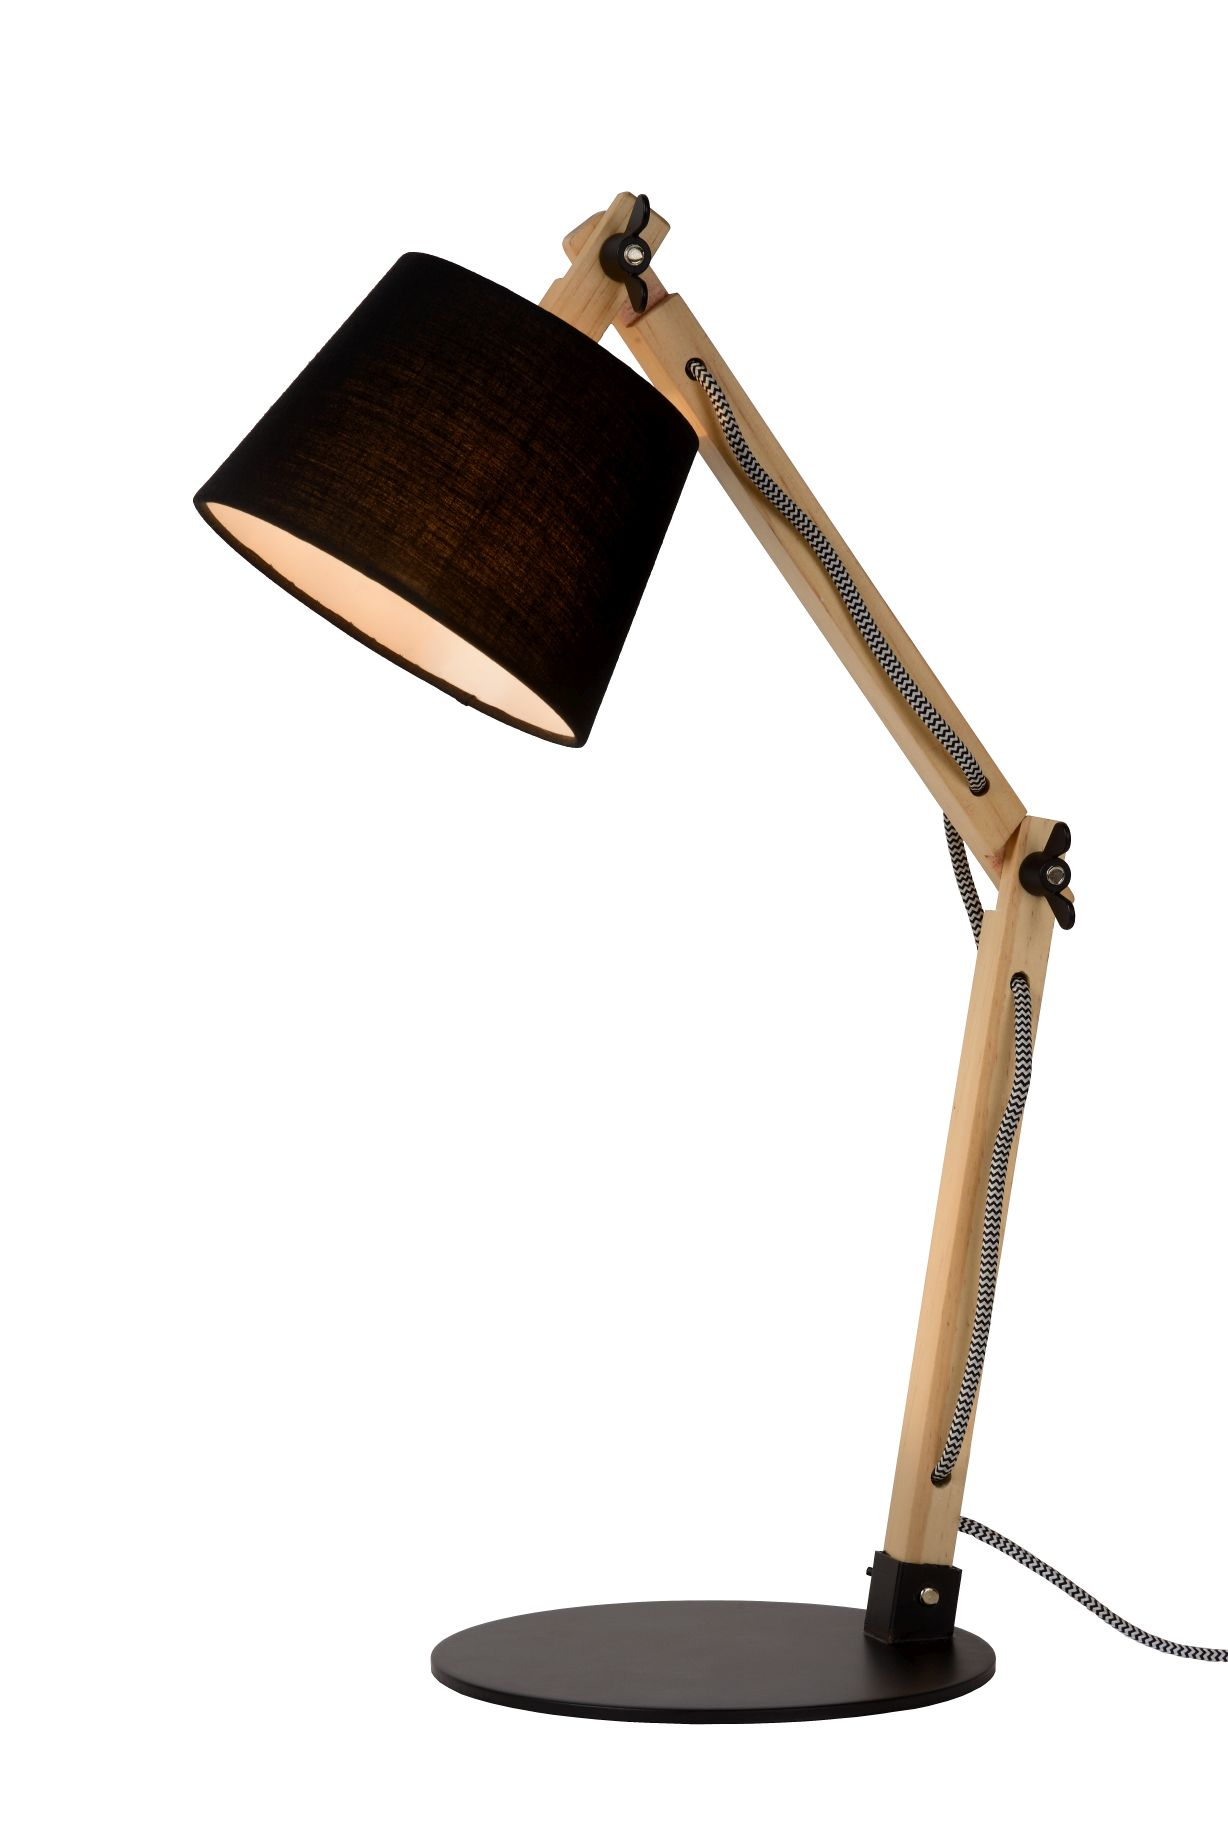 OLLY Desk lamp E14 L43 D15,5 H68cm Black